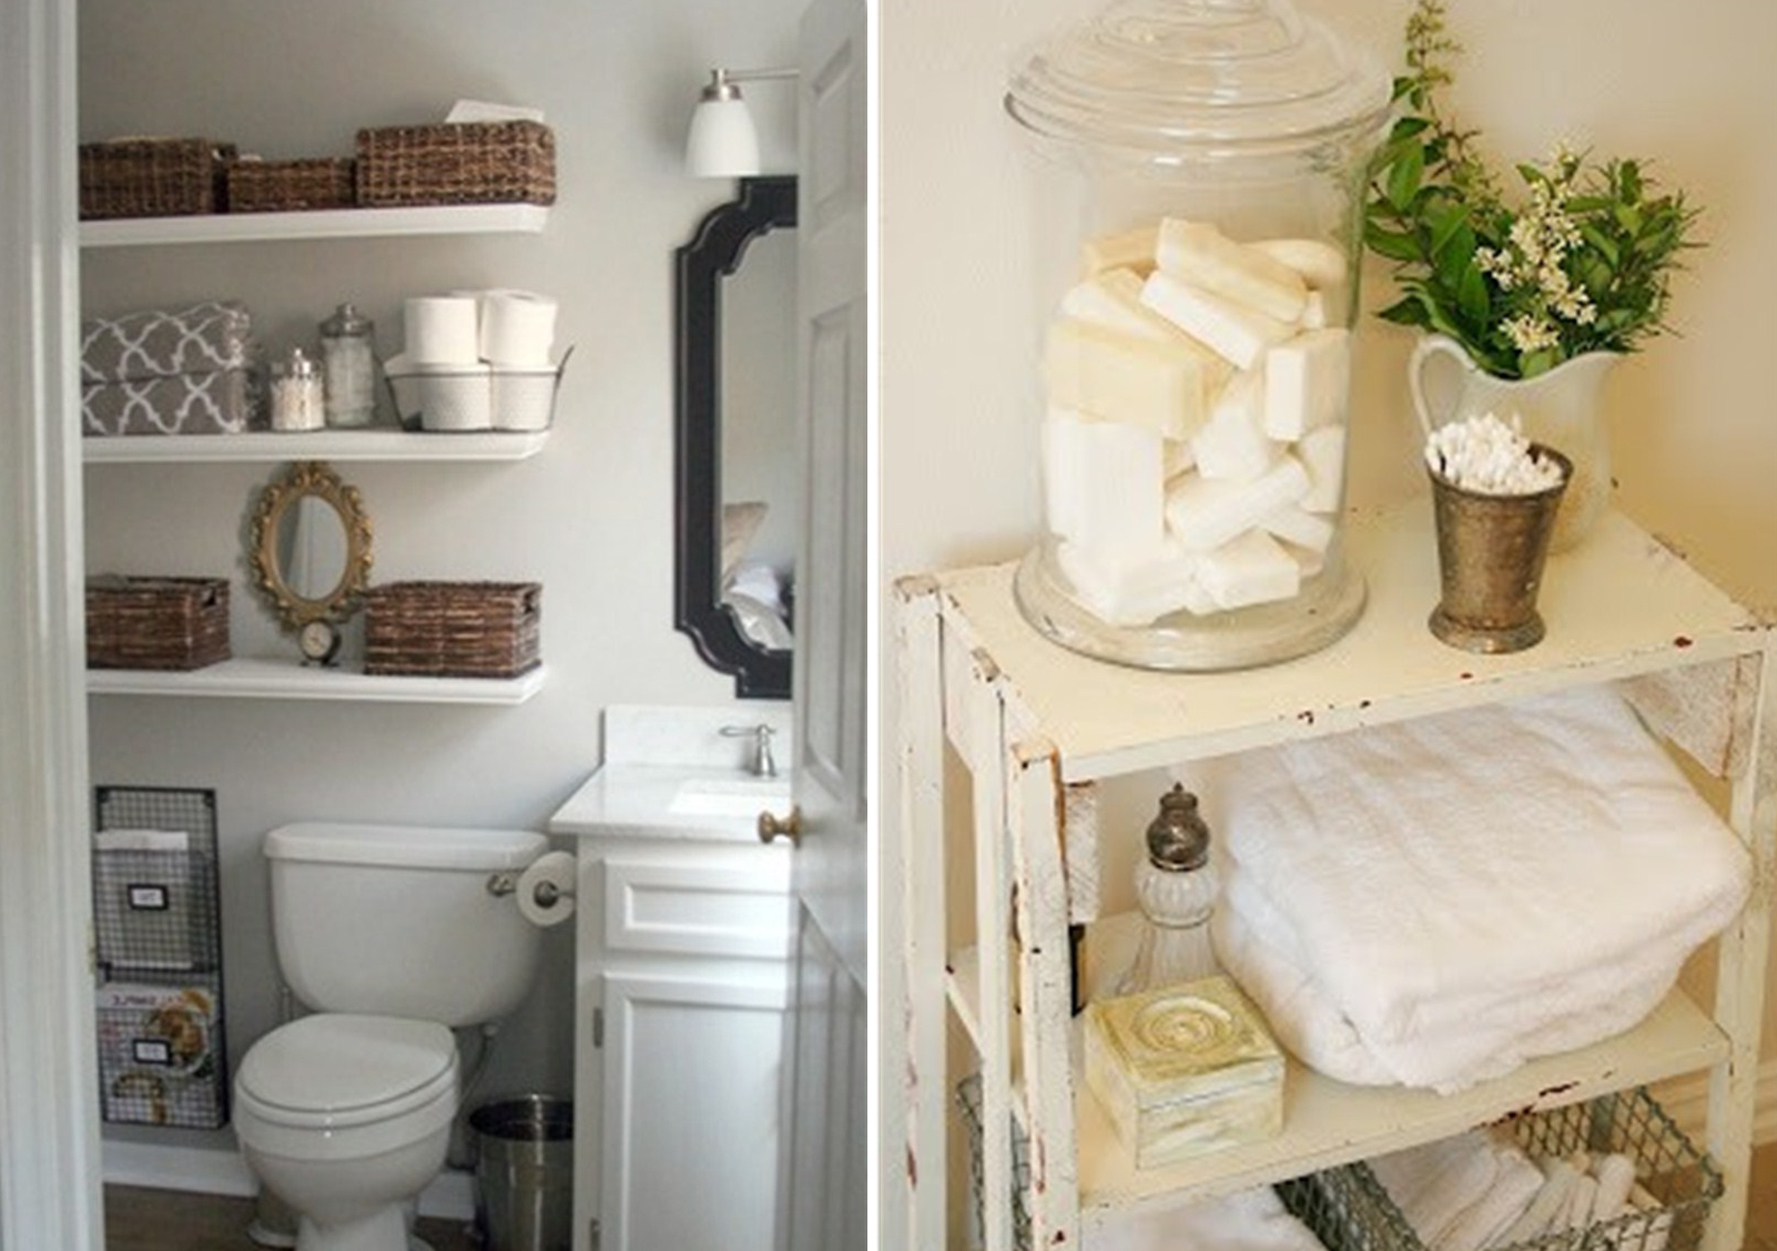 Cool Small Bathroom Storage Ideas | Ivchic Home Design intended for Bathroom Wall Storage Ideas